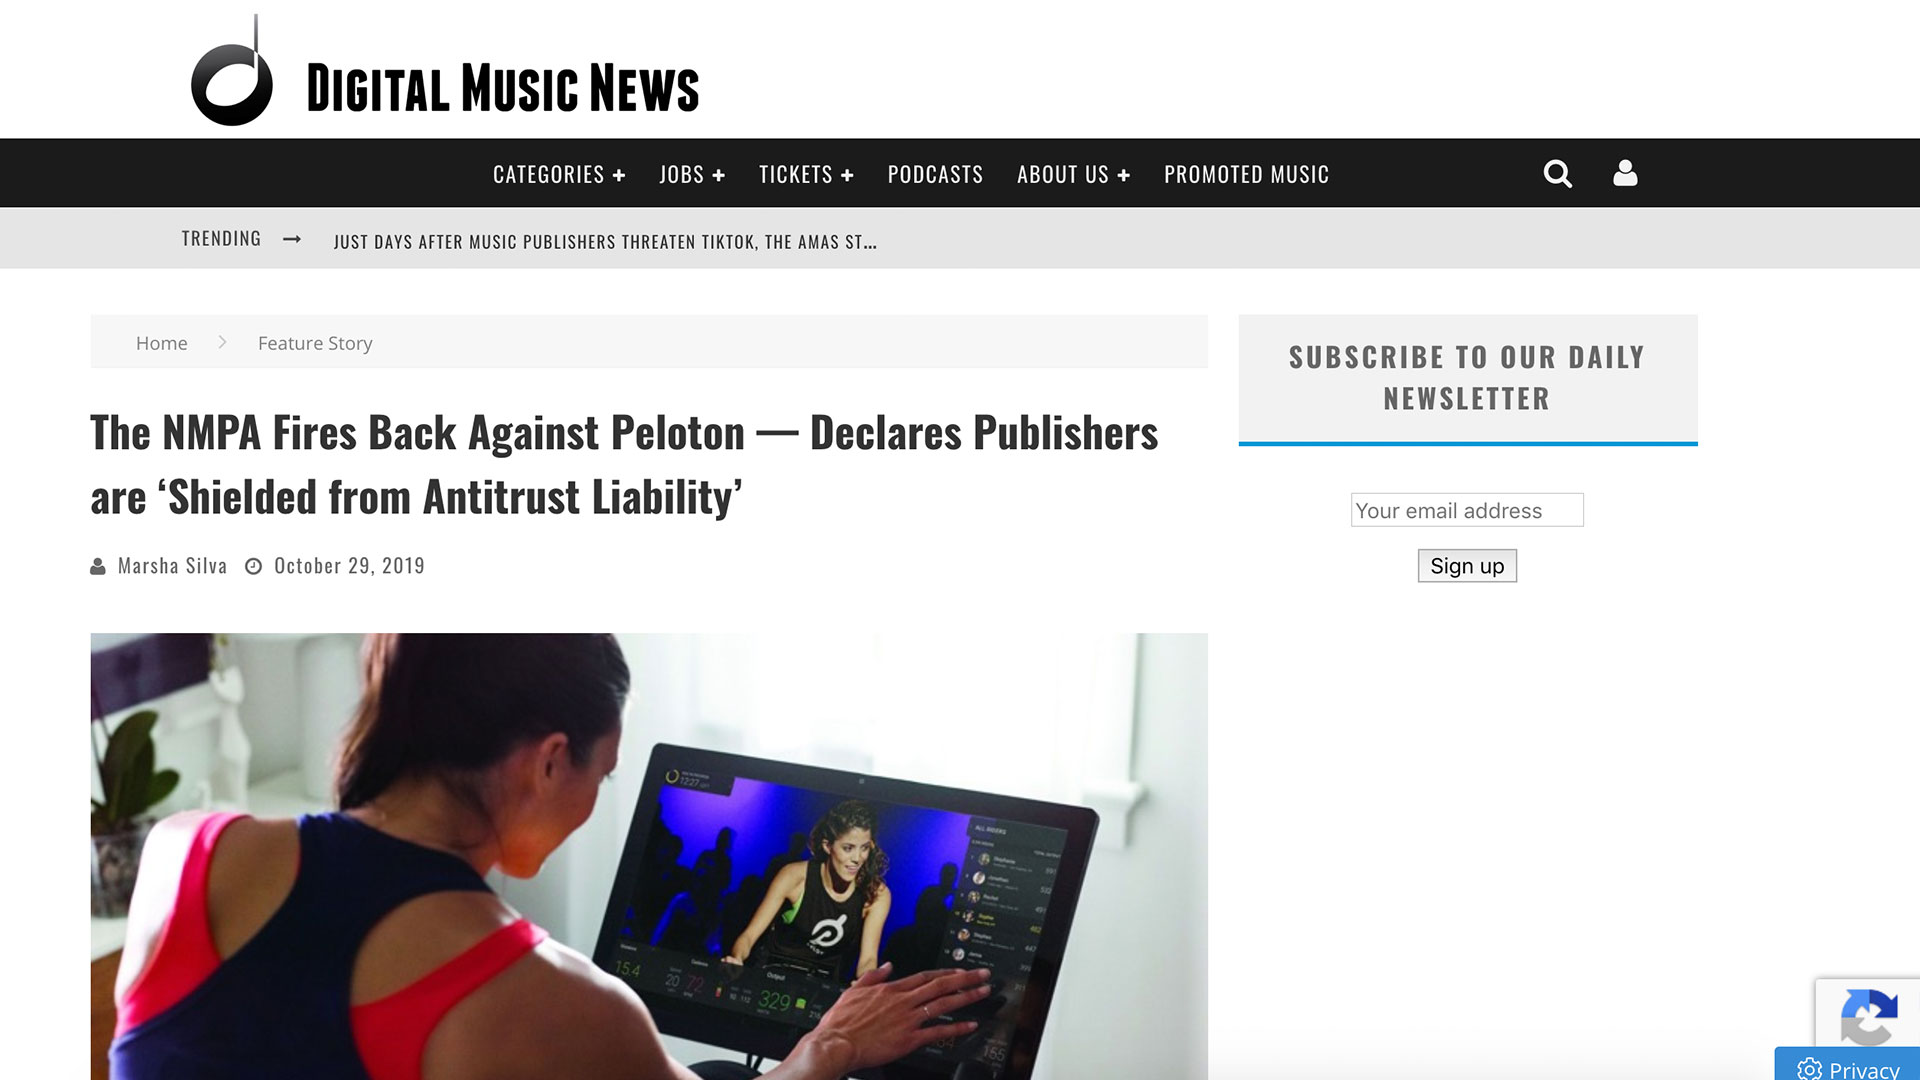 Fairness Rocks News The NMPA Fires Back Against Peloton — Declares Publishers are 'Shielded from Antitrust Liability'